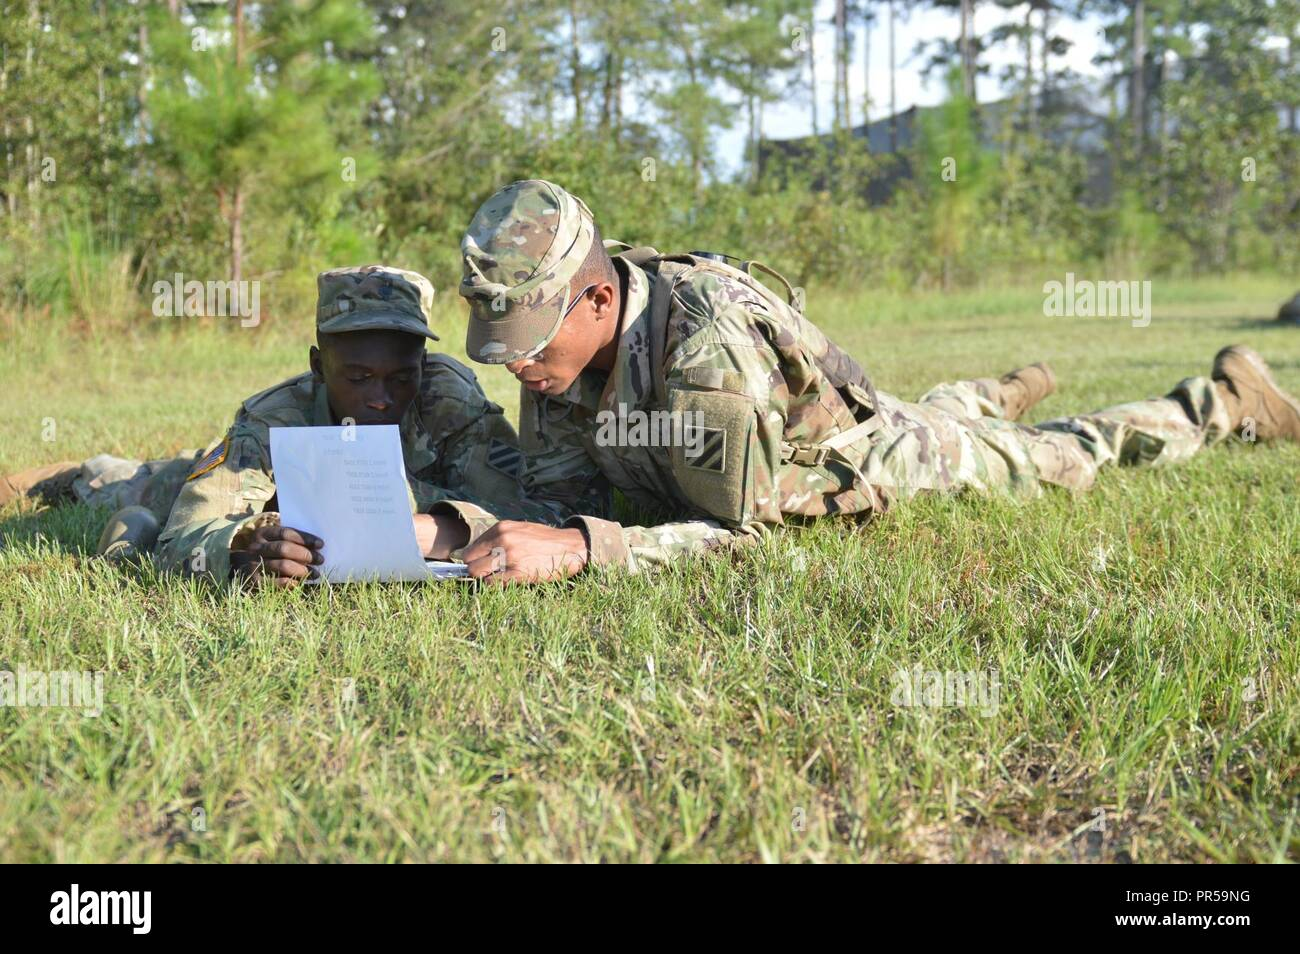 Georgia Army National Guardsmen Spc. Ricktavious Anderson ... on map of georgia google maps, map of ft valley georgia, map of social circle georgia, map of chamblee georgia, map of st simons georgia, map of winston georgia, map of tallulah falls georgia, map of hawkinsville georgia, map of union georgia, map of pulaski county georgia, map of twin city georgia, map of putnam georgia, map of fort oglethorpe georgia, map of woodbine georgia, map of west point georgia, map of colquitt georgia, map of cario georgia, map of ty ty georgia, map of hapeville georgia, map of carter lake georgia,